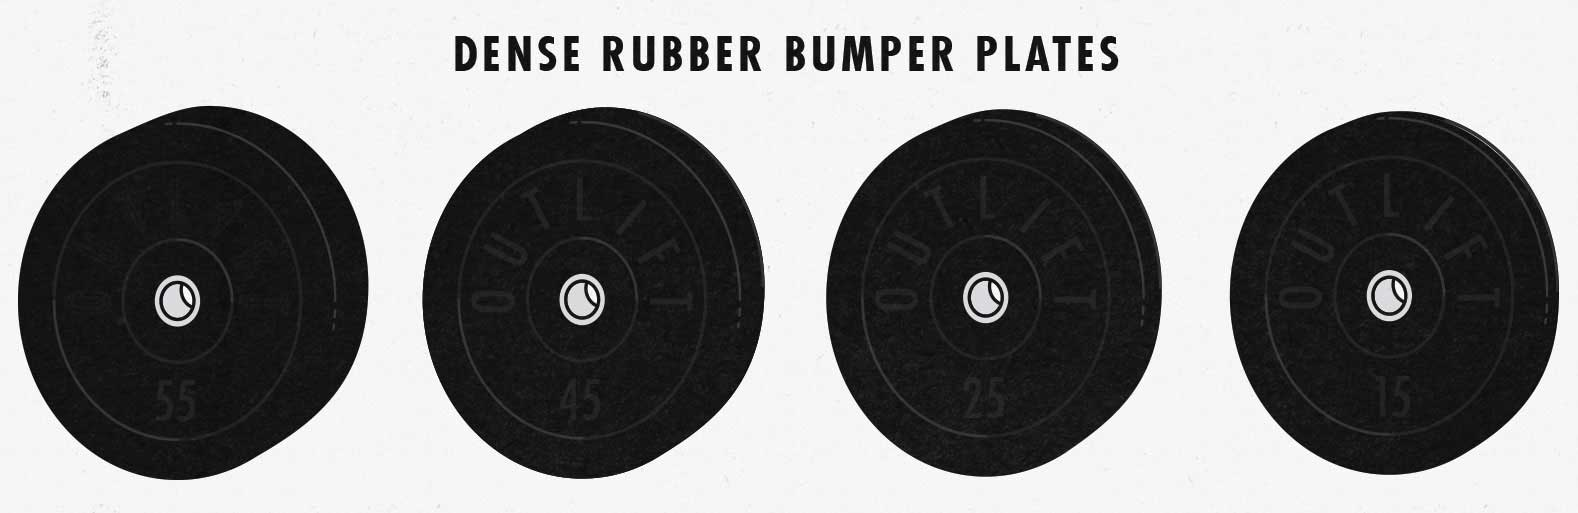 Should you get bumper plates or metal weight plates for your barbell home gym if your goal is gaining muscle size and strength?